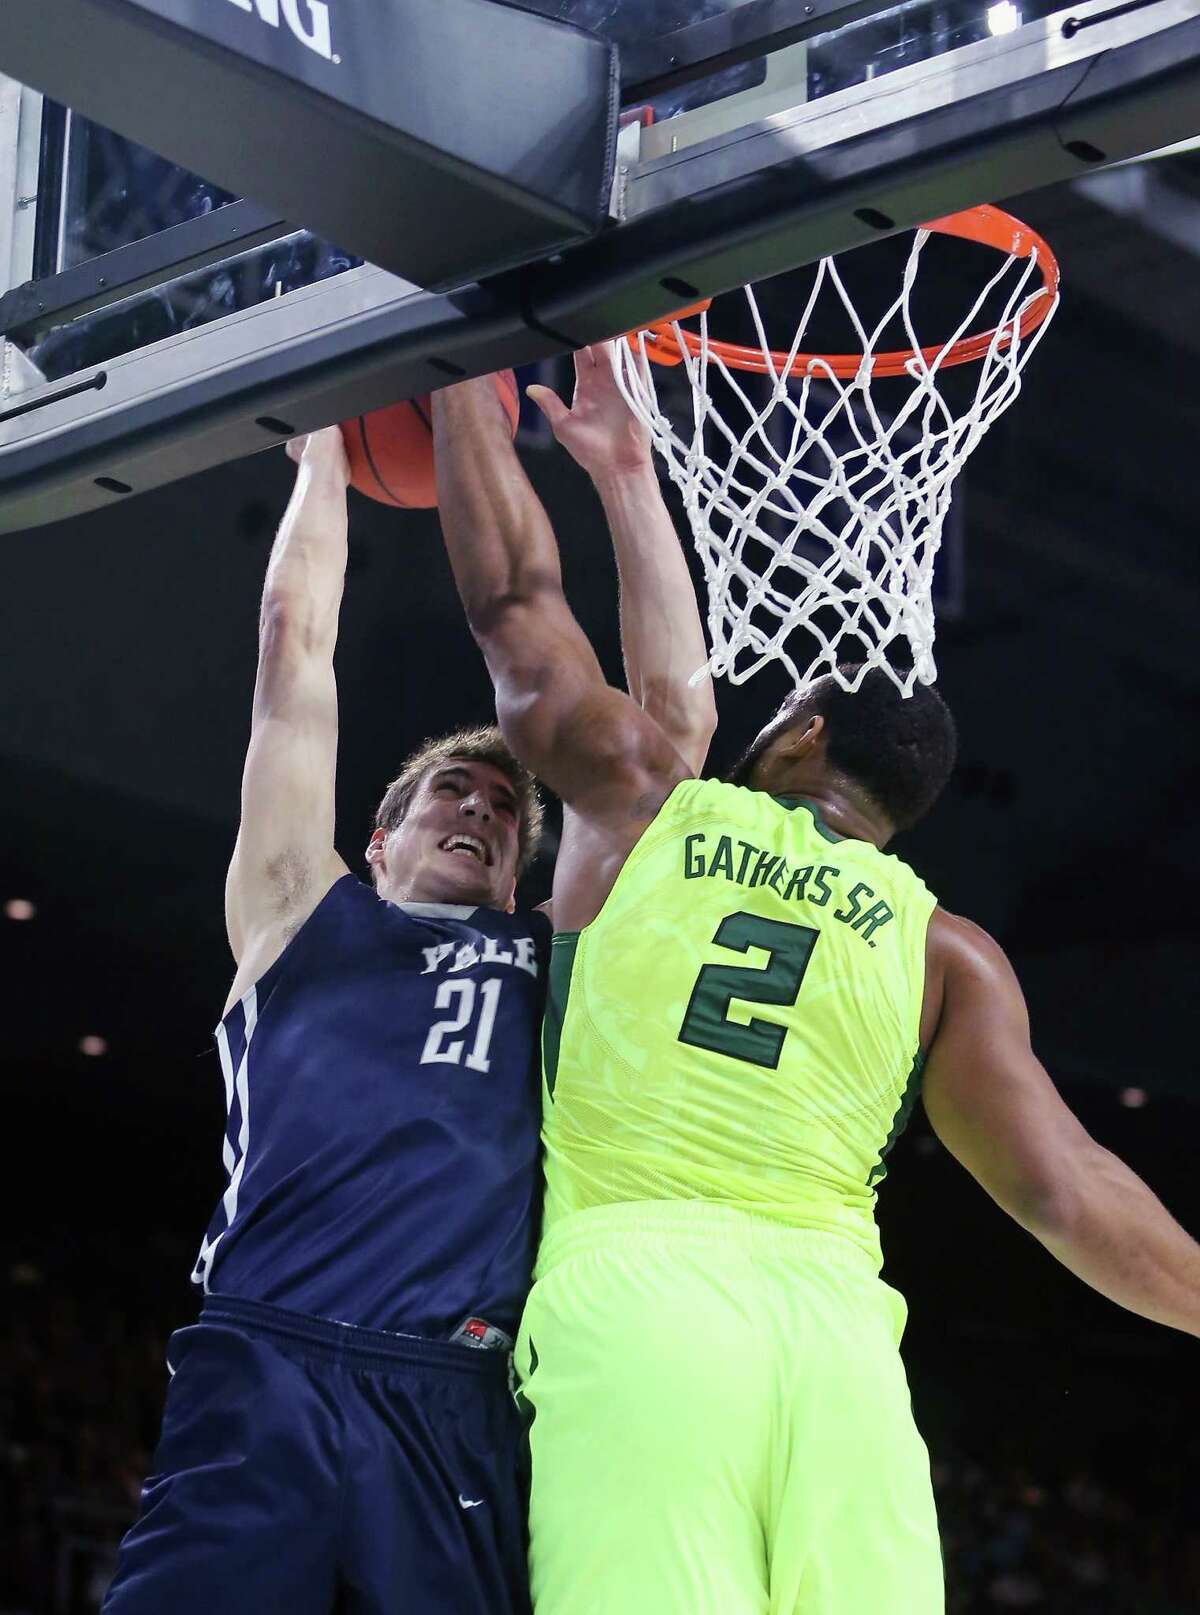 PROVIDENCE, RI - MARCH 17: Rico Gathers #2 of the Baylor Bears blocks a shot by Nick Victor #21 of the Yale Bulldogs in the first half of their game during the first round of the 2016 NCAA Men's Basketball Tournament at Dunkin' Donuts Center on March 17, 2016 in Providence, Rhode Island.